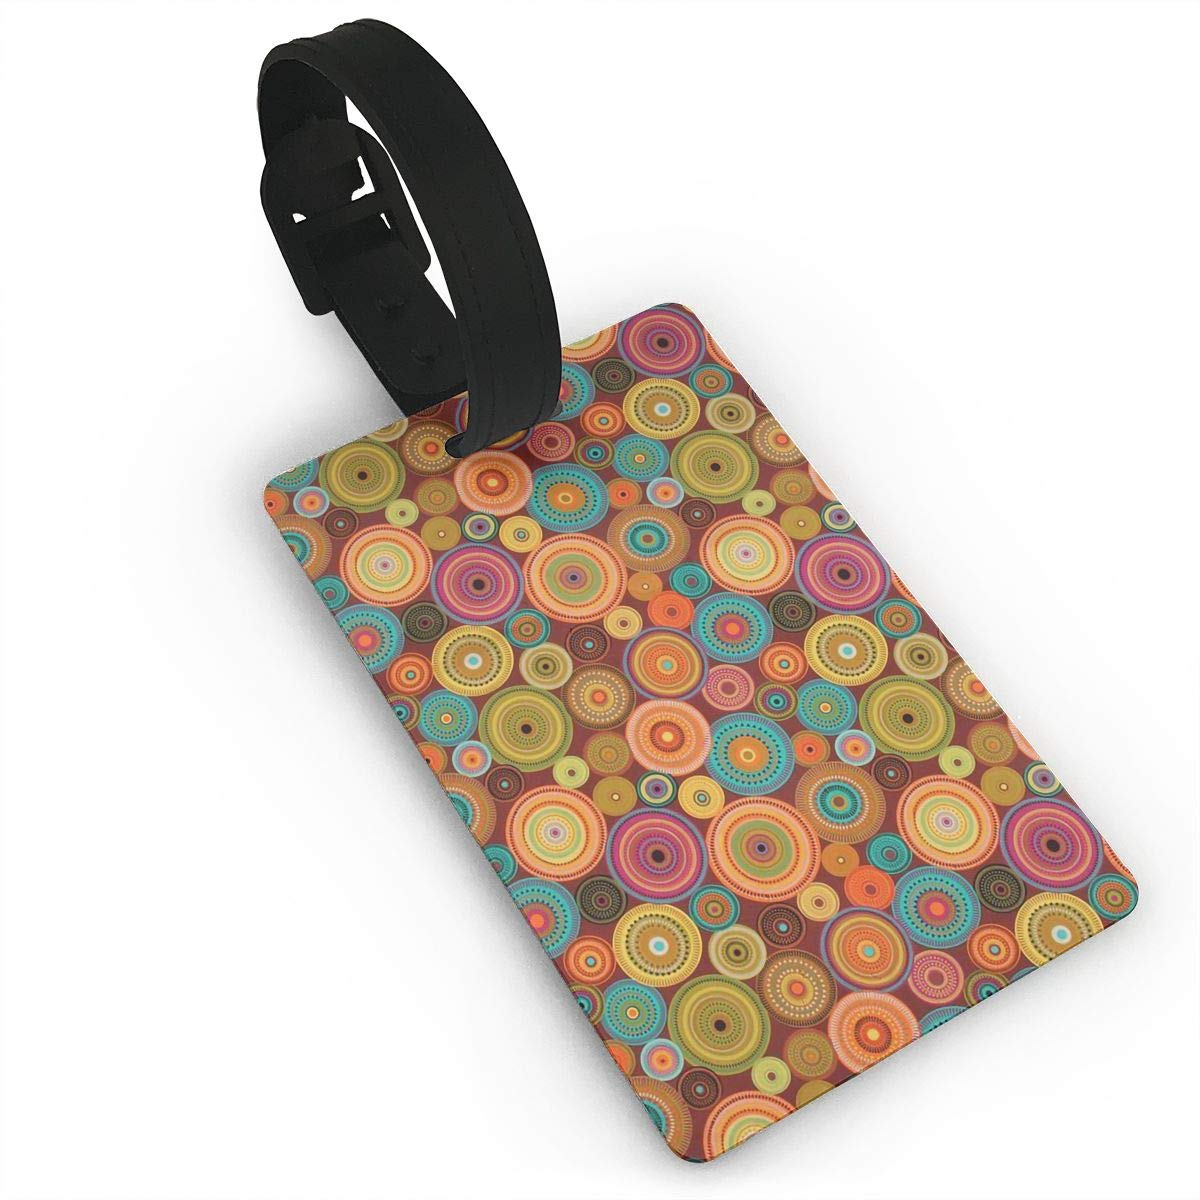 Colorful Polka Dot Handbag Tag For Travel Bag Suitcase Accessories 2 Pack Luggage Tags